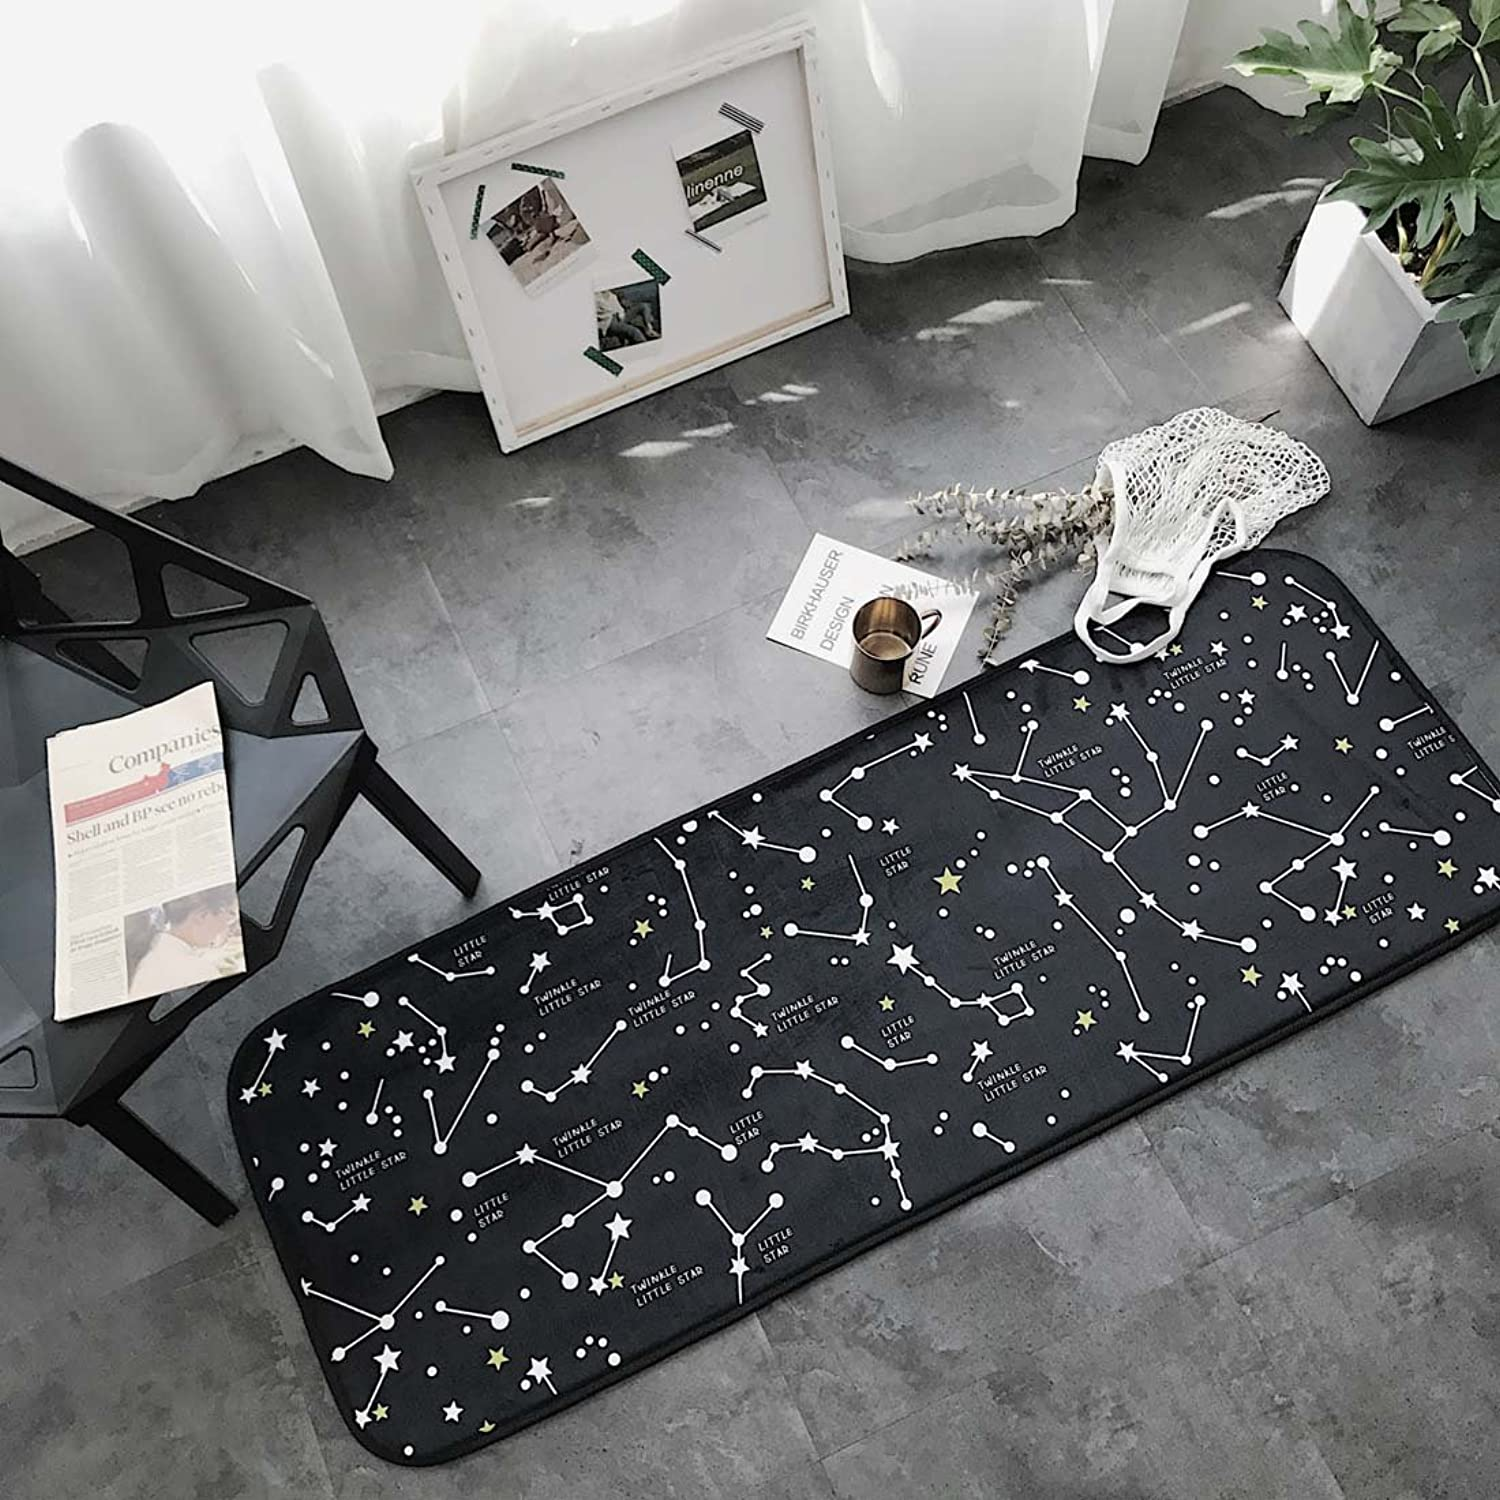 Babe MAPS Indoor Outdoor 2PCS Doormat Entrance Welcome Mat Absorbent Runner Inserts Non Slip Entry Rug Funny Constellation Pattern, Home Decor Inside shoes Scraper Floor Carpet 19 x27  19 x58